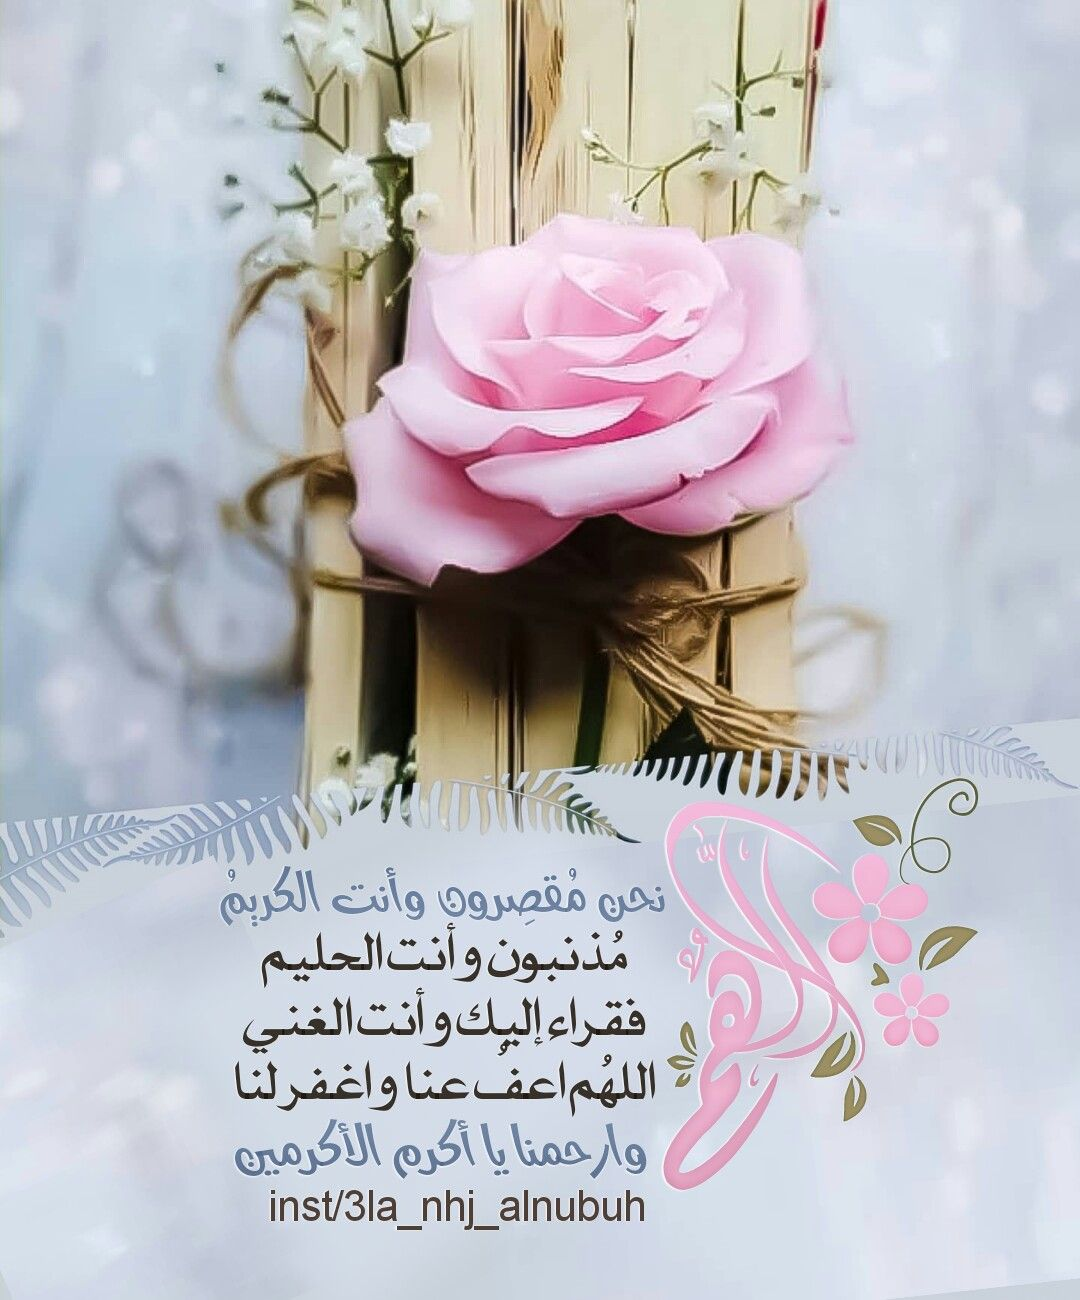 Pin By Saja Khalid On ادعية وتسابيح Place Card Holders Cards Place Cards